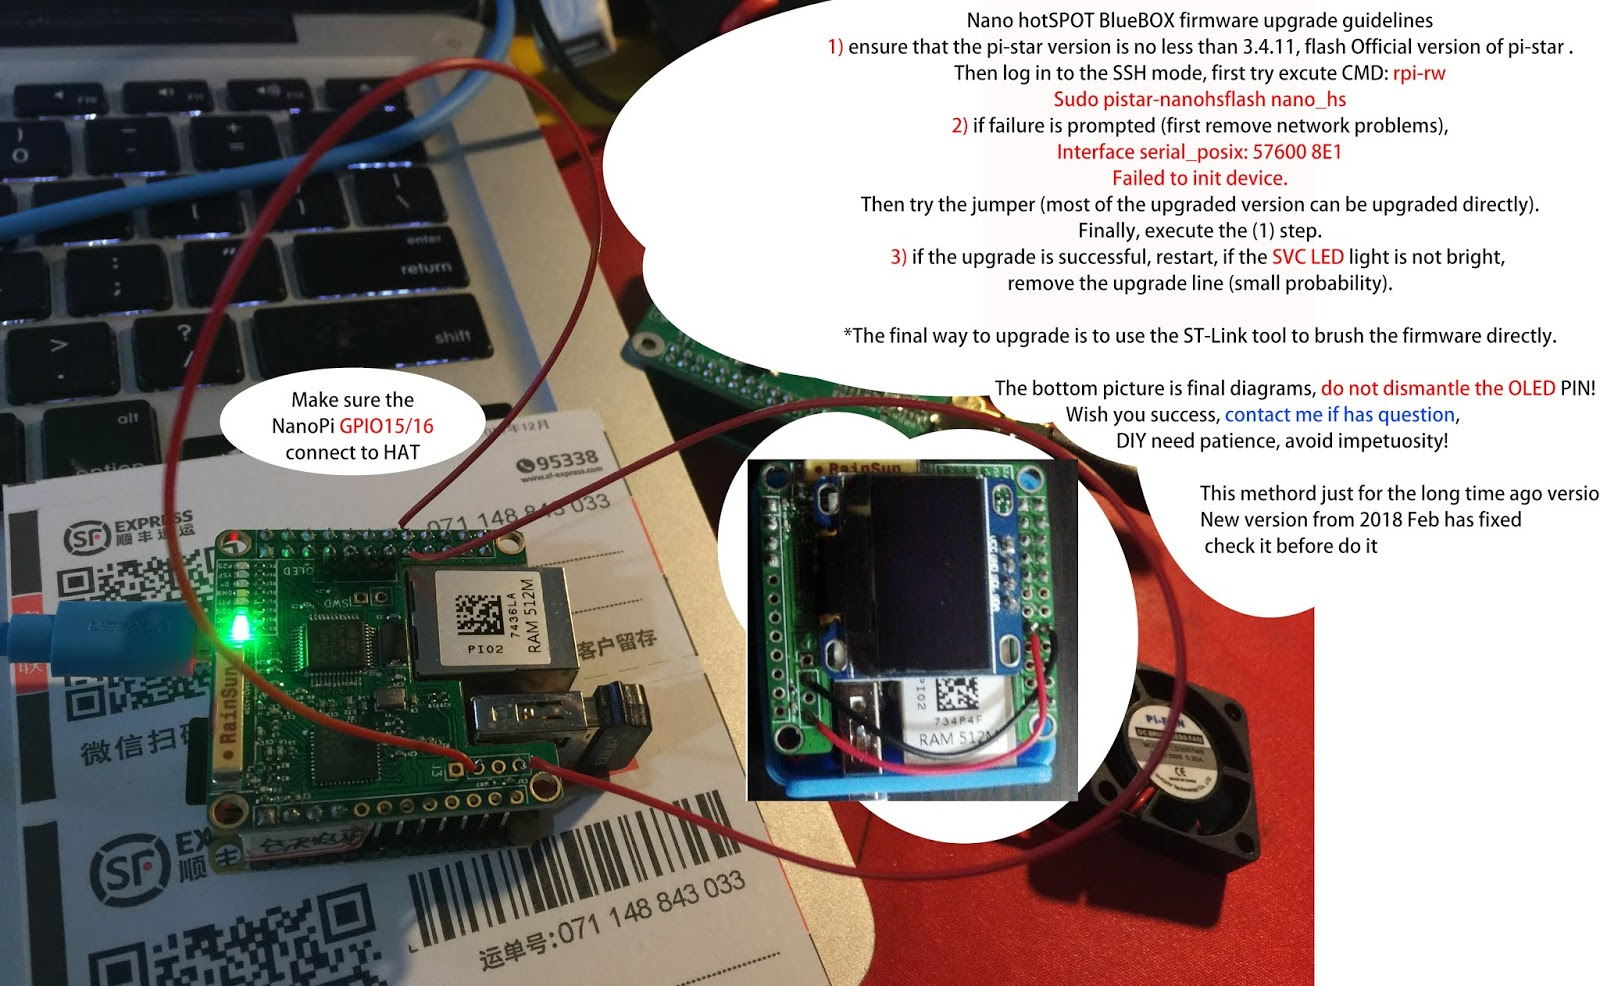 BI7JTA BLOG for MMDVM: UserGuide for Nano hotSPOT(blueBox)